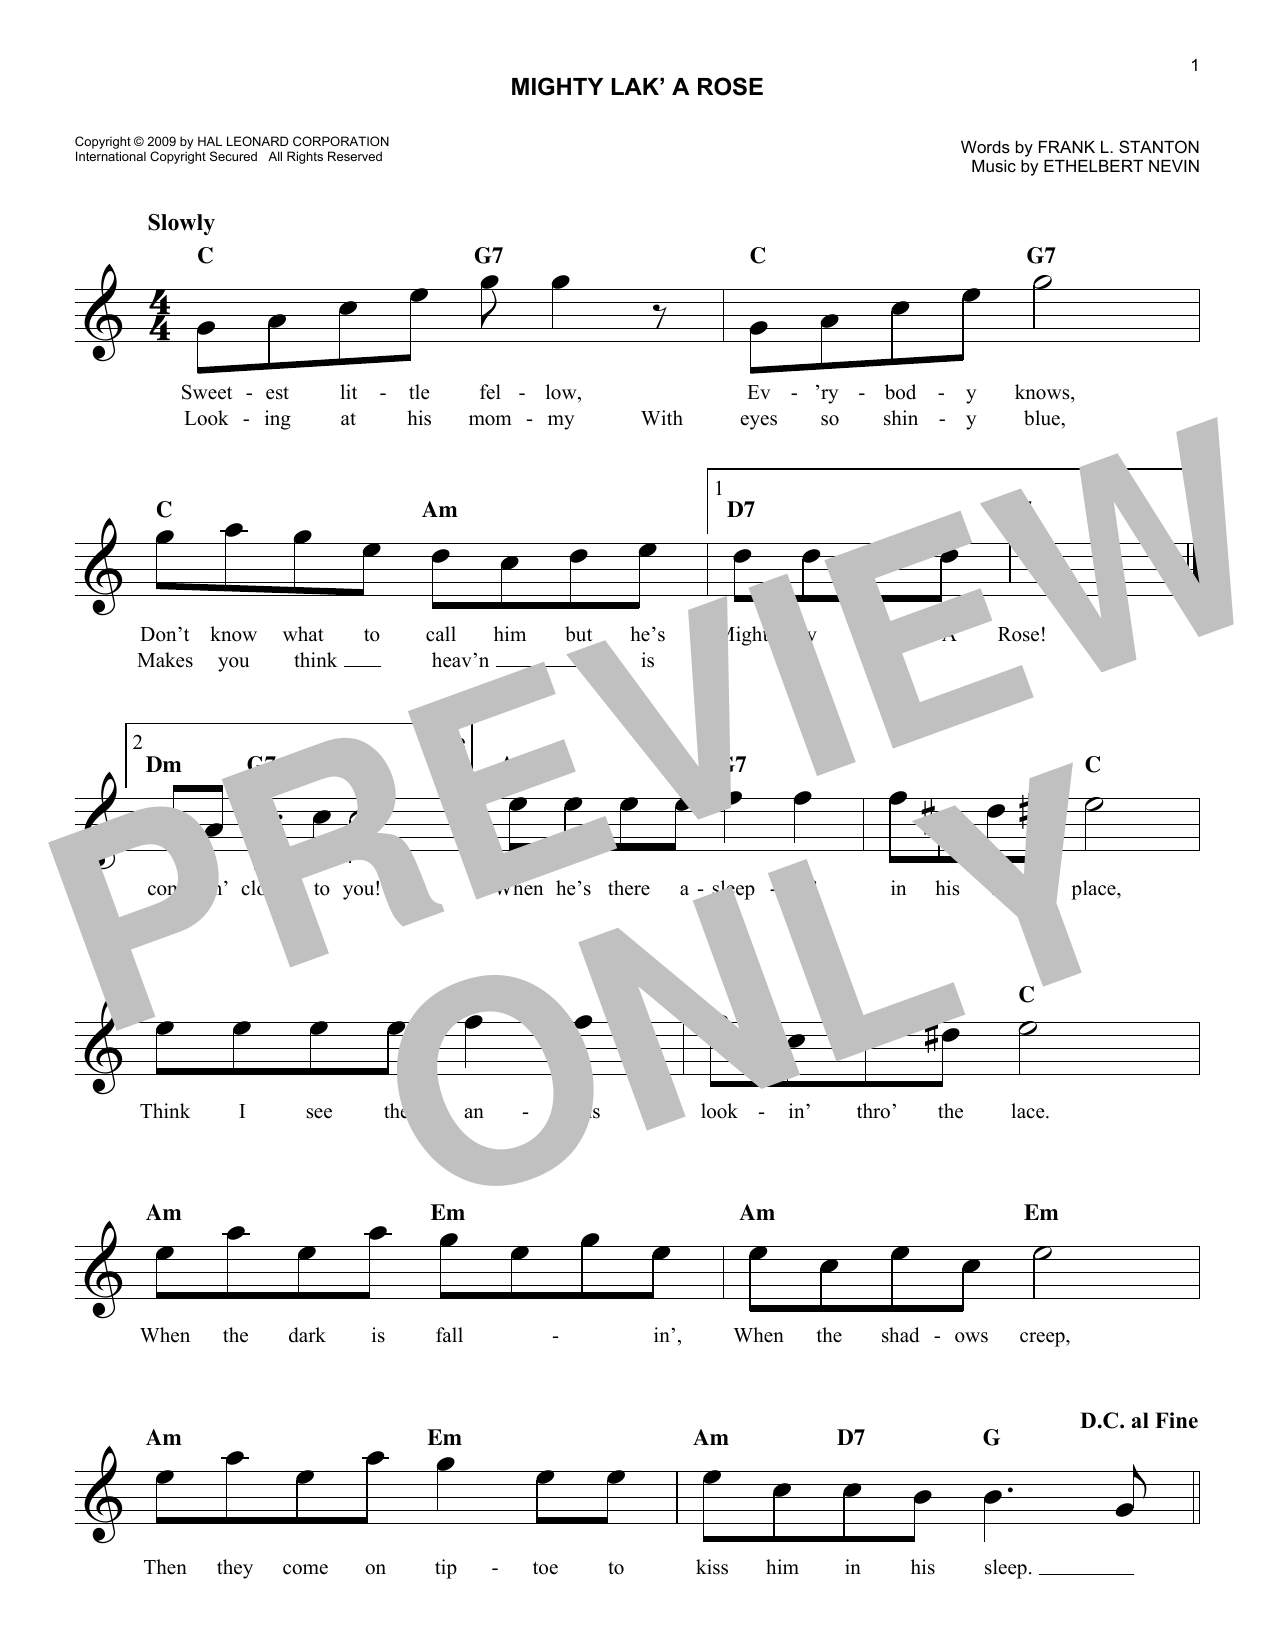 Ethelbert Nevin Mighty Lak' A Rose sheet music notes and chords. Download Printable PDF.